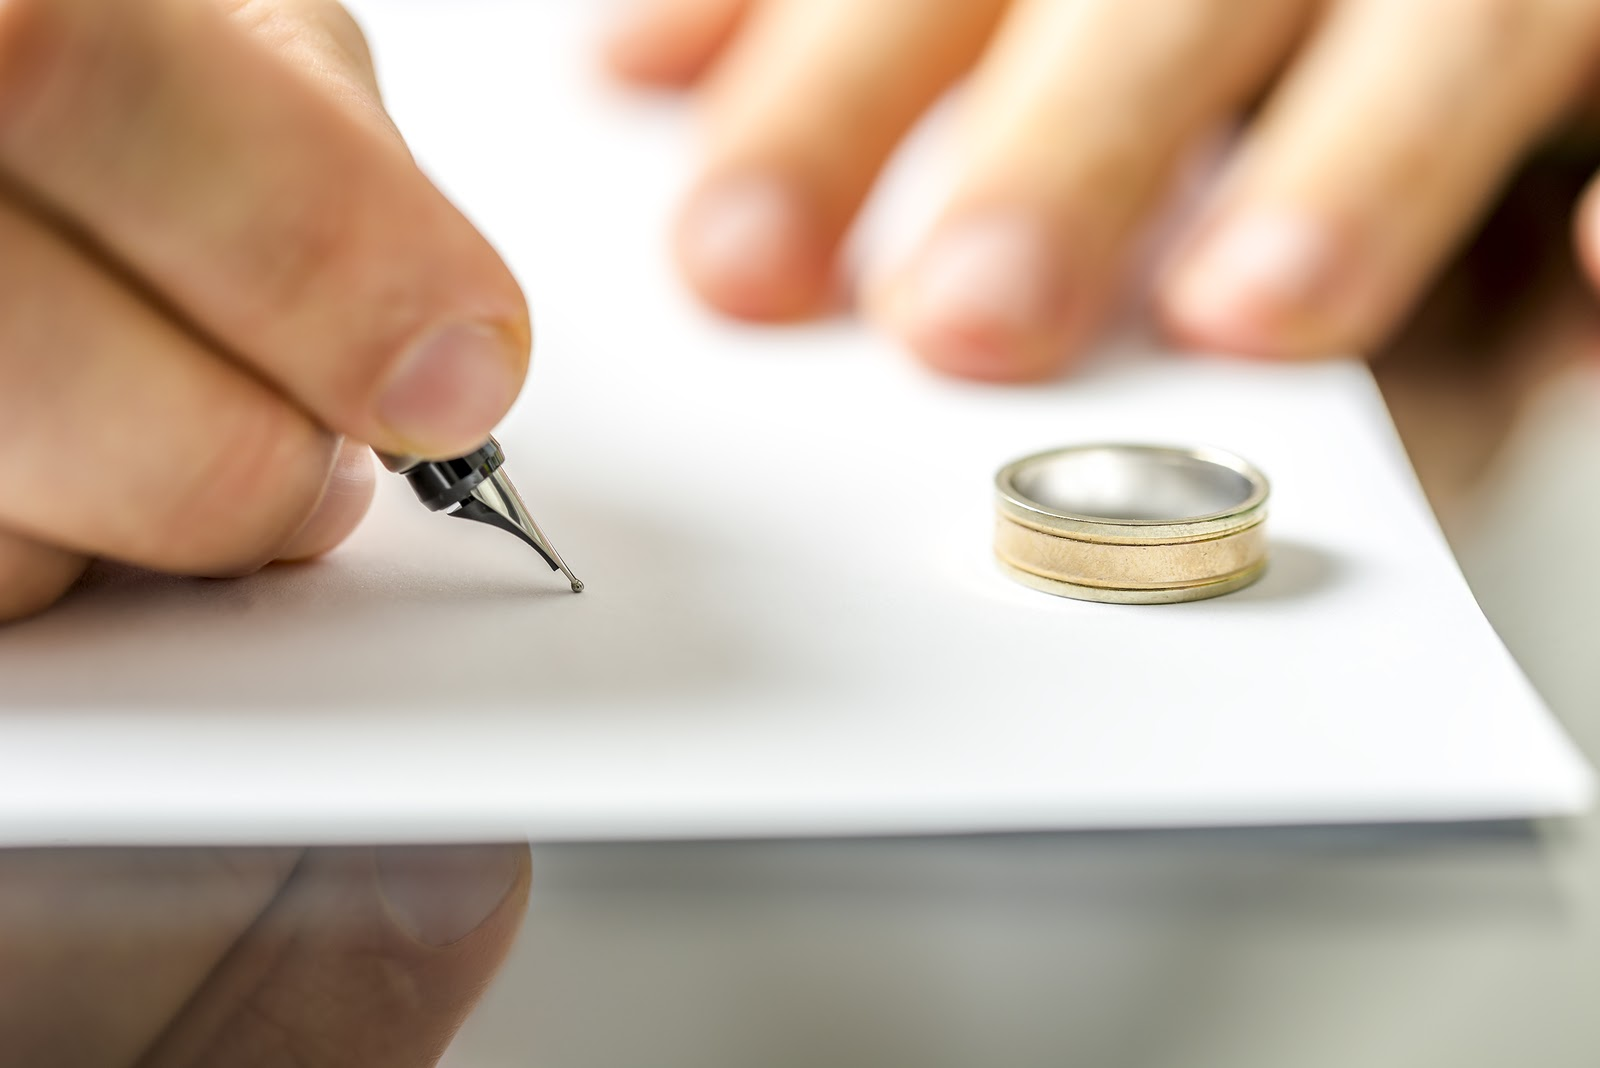 Divorce for Cheating Spouse in TX